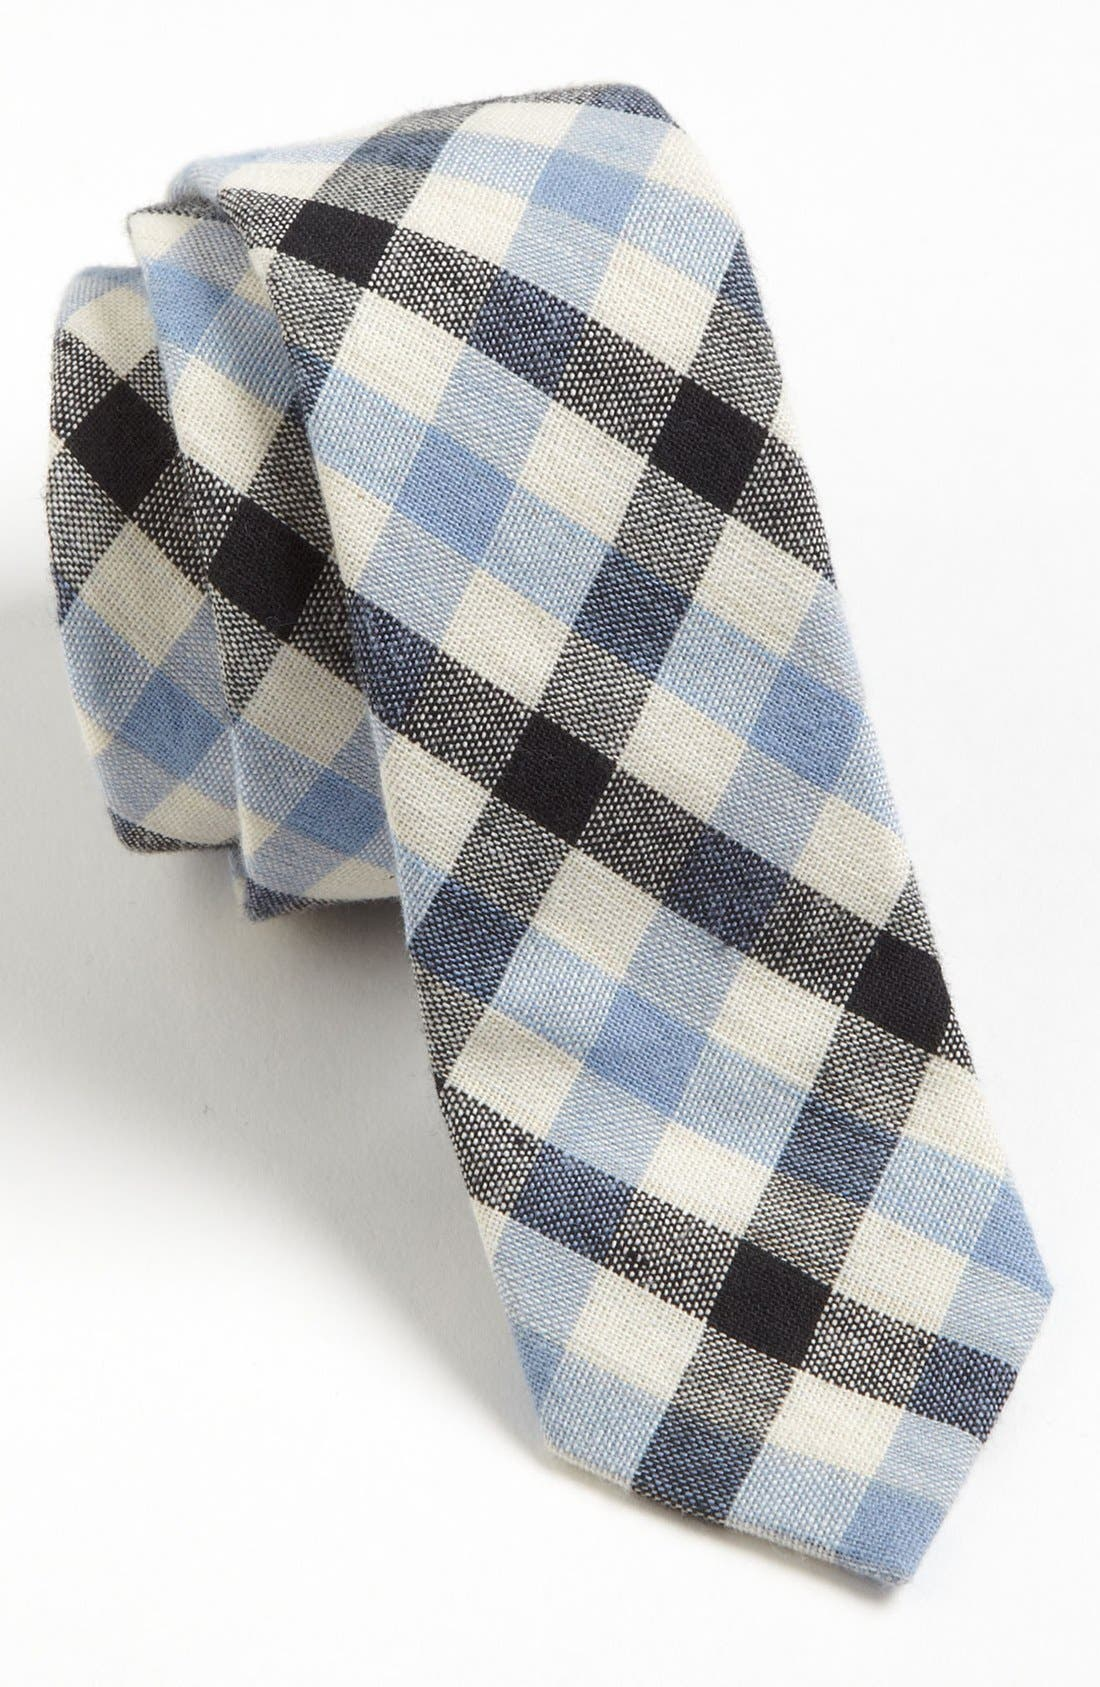 TOPMAN, Heritage Check Woven Tie, Main thumbnail 1, color, 400